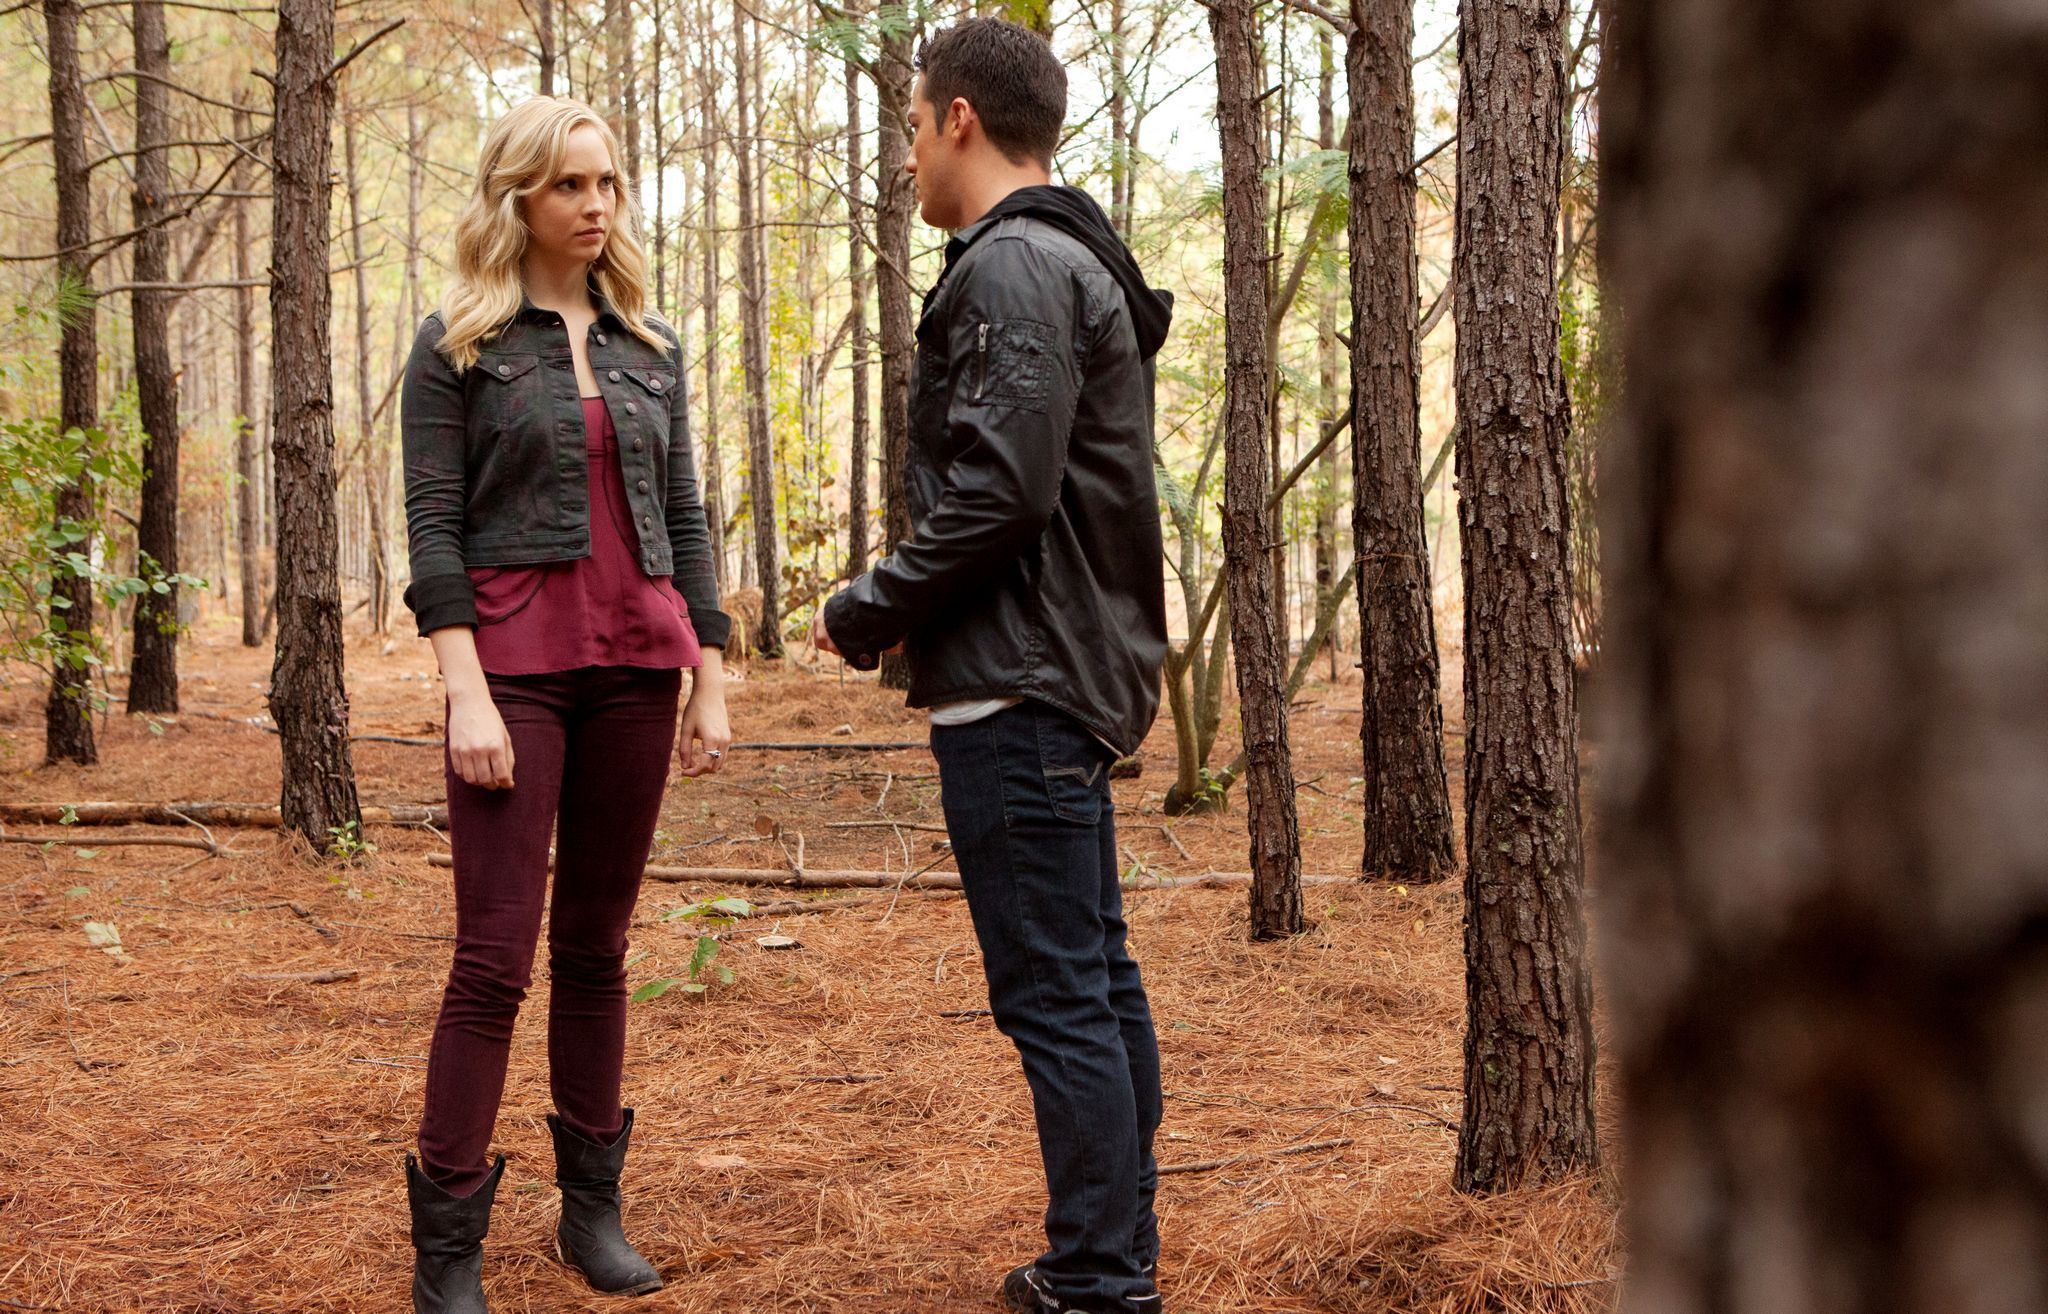 New Still From The Vampire Diaries 2.10 – 'The Sacrifice' (HQ)